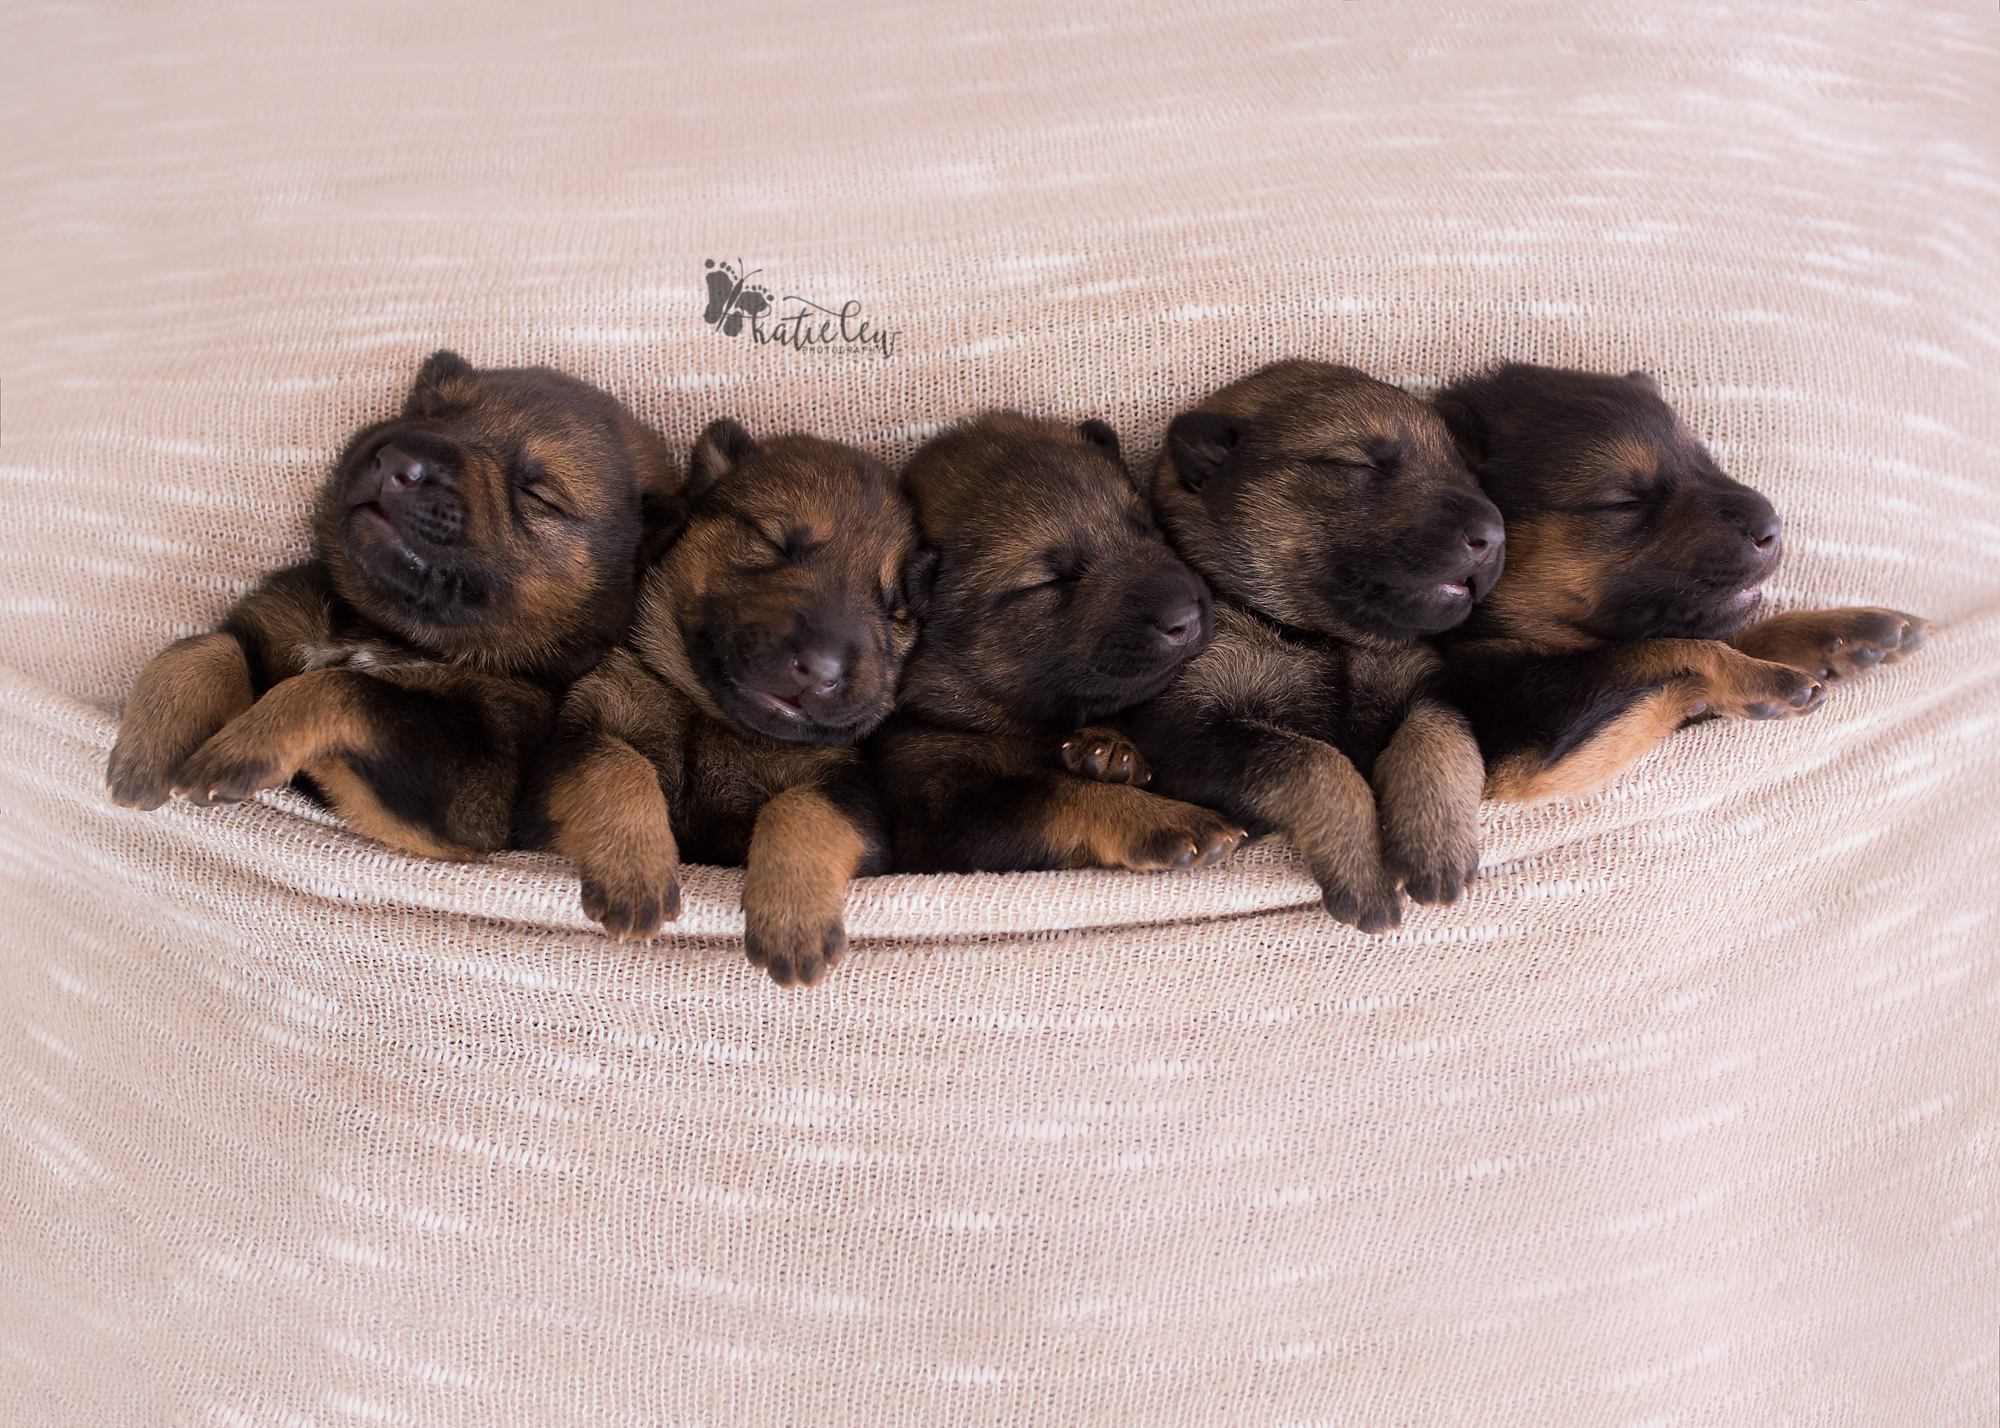 That one time I photographed adorable 10 days old puppies